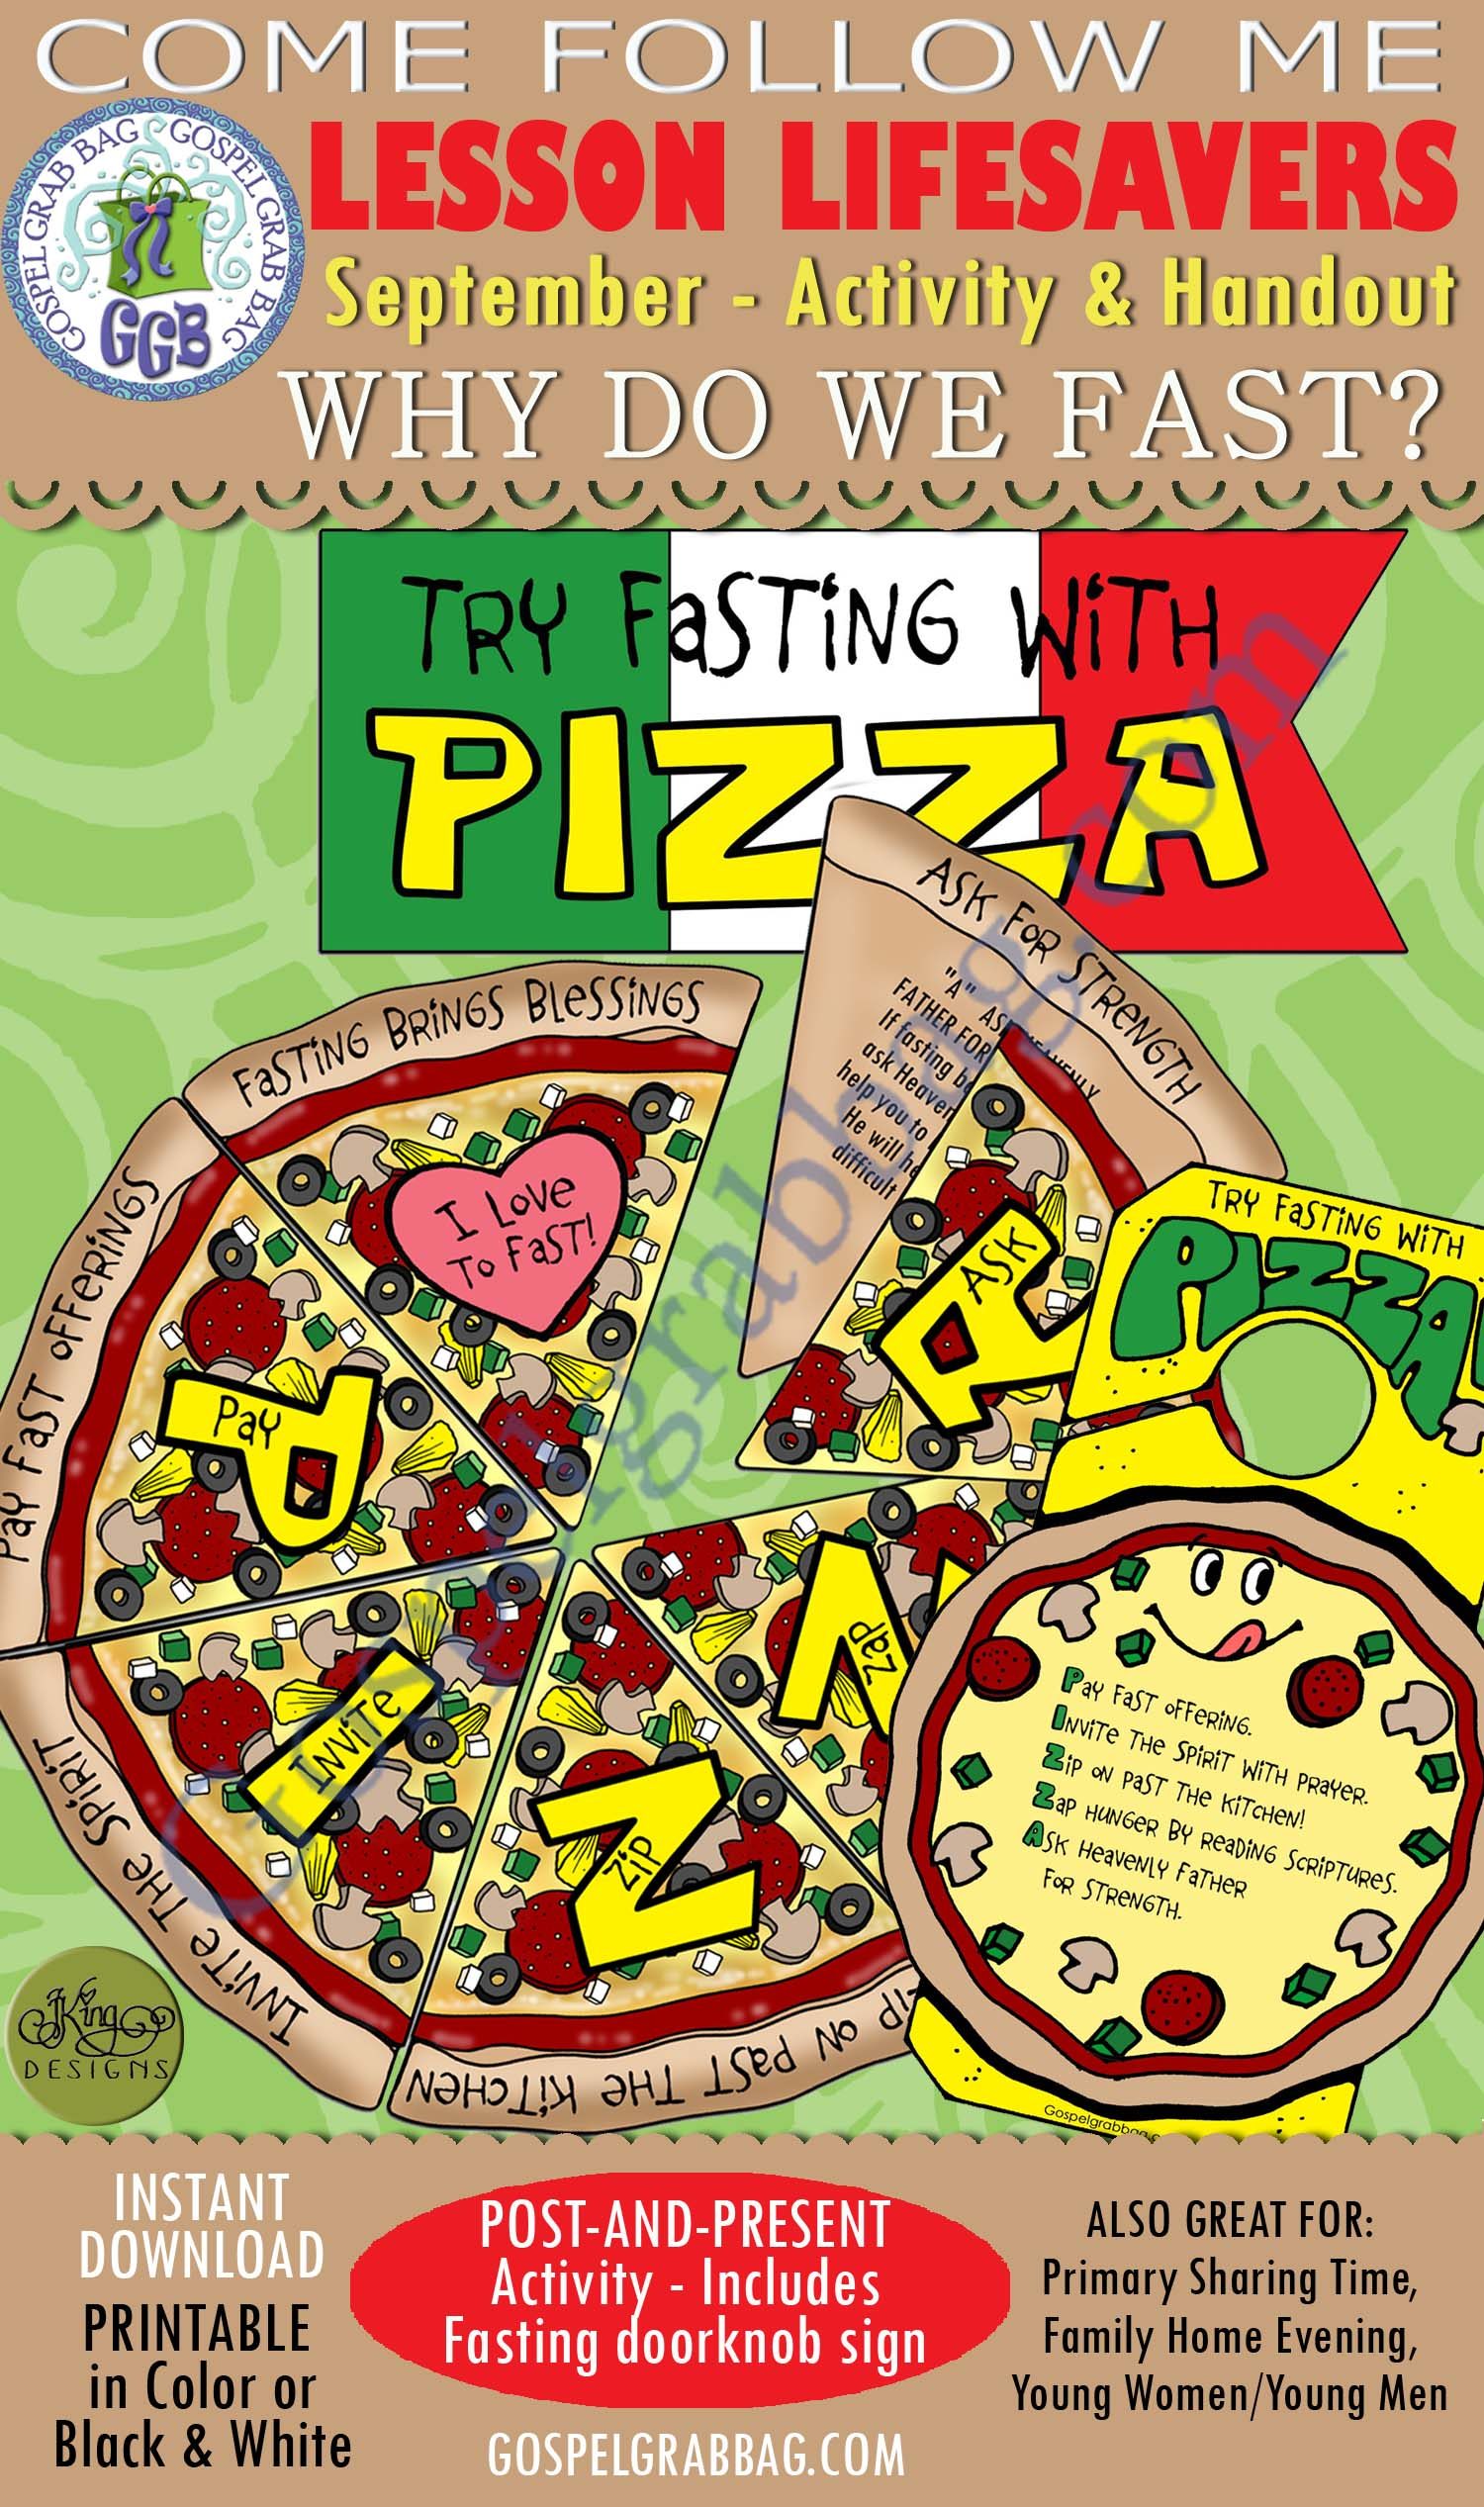 "$3.50 FASTING Activity: ""Fasting with Pizza"" game and doorknob reminder - COME FOLLOW ME September Week 4 Lesson Follow Me, ""Why do we fast?"""